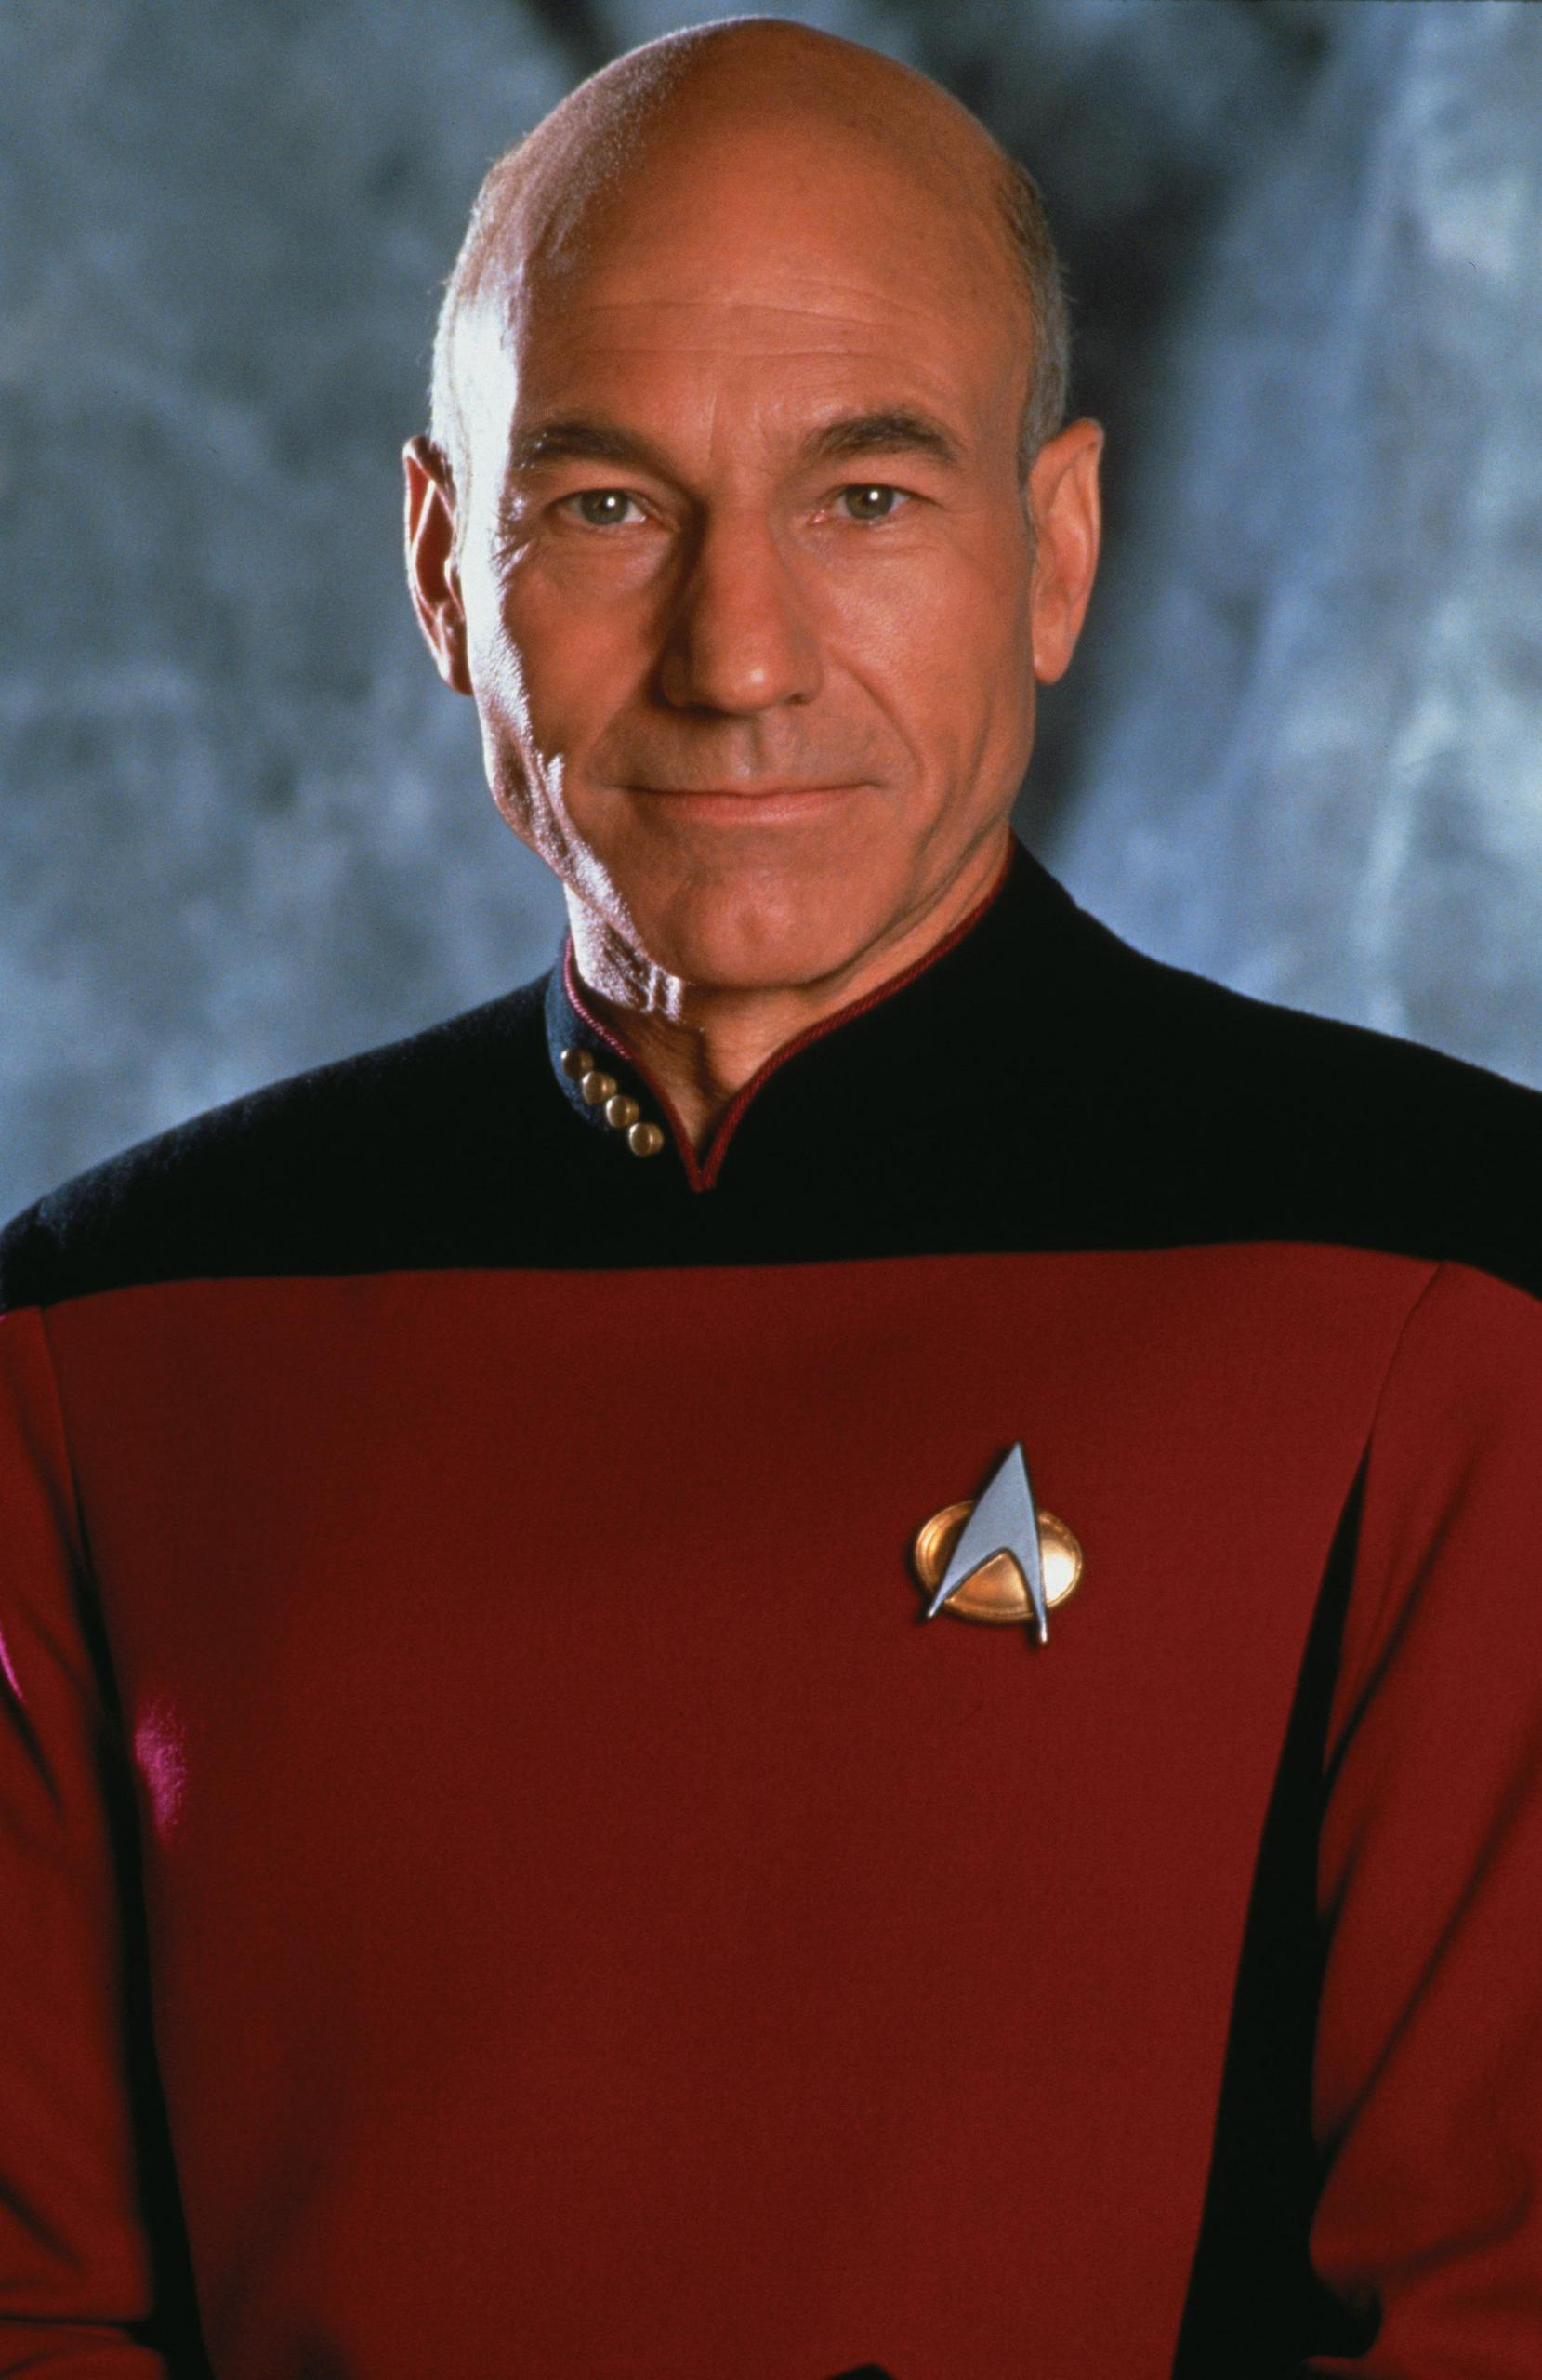 Jean-Luc Picard - Brought to you by www.fanpop.com